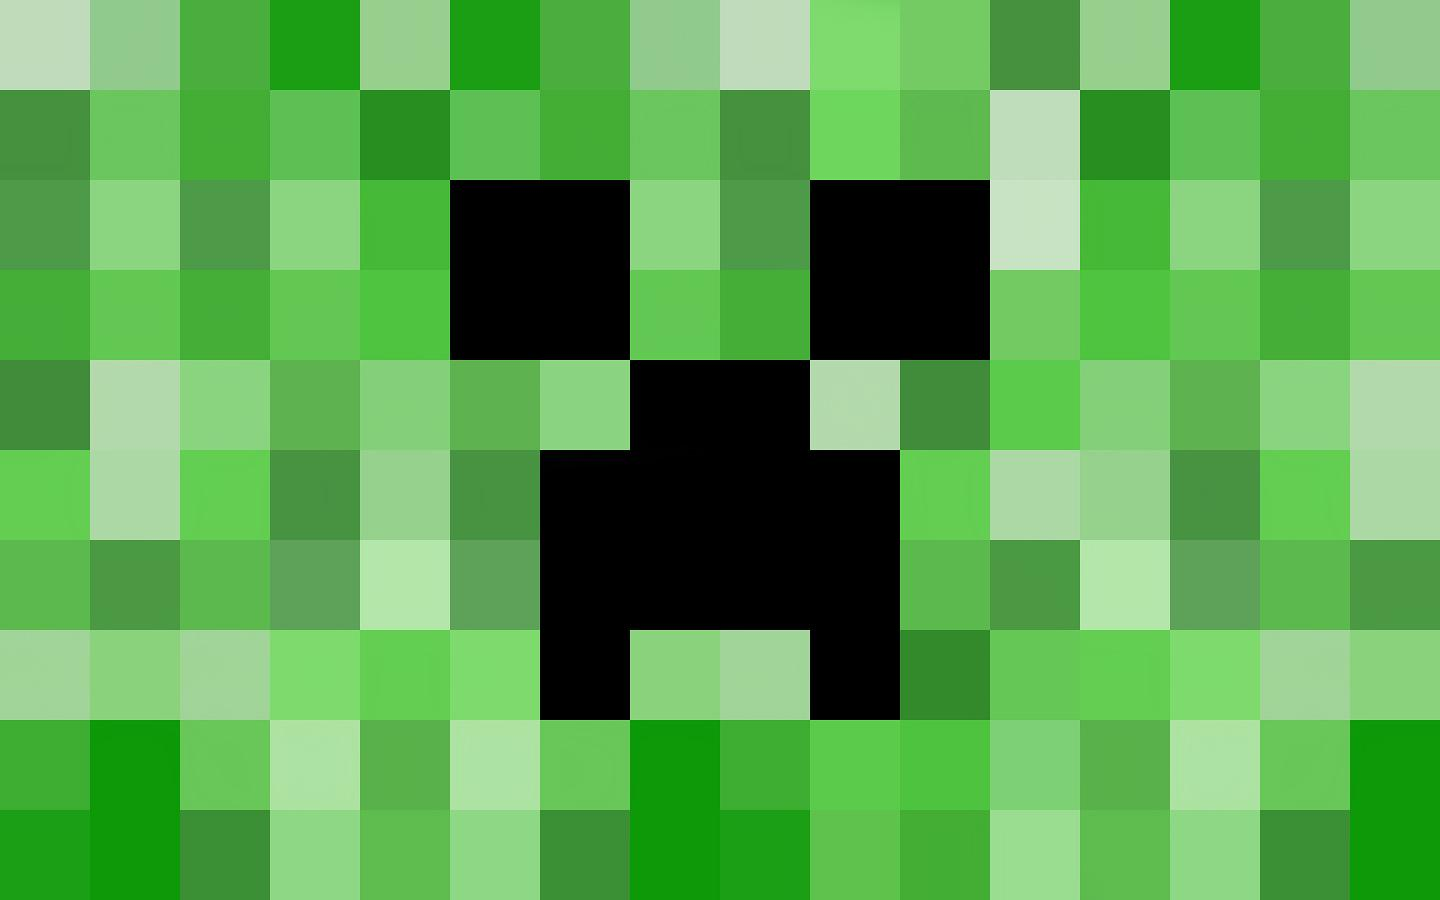 Minecraft Creeper Wallpaper 1080p HD